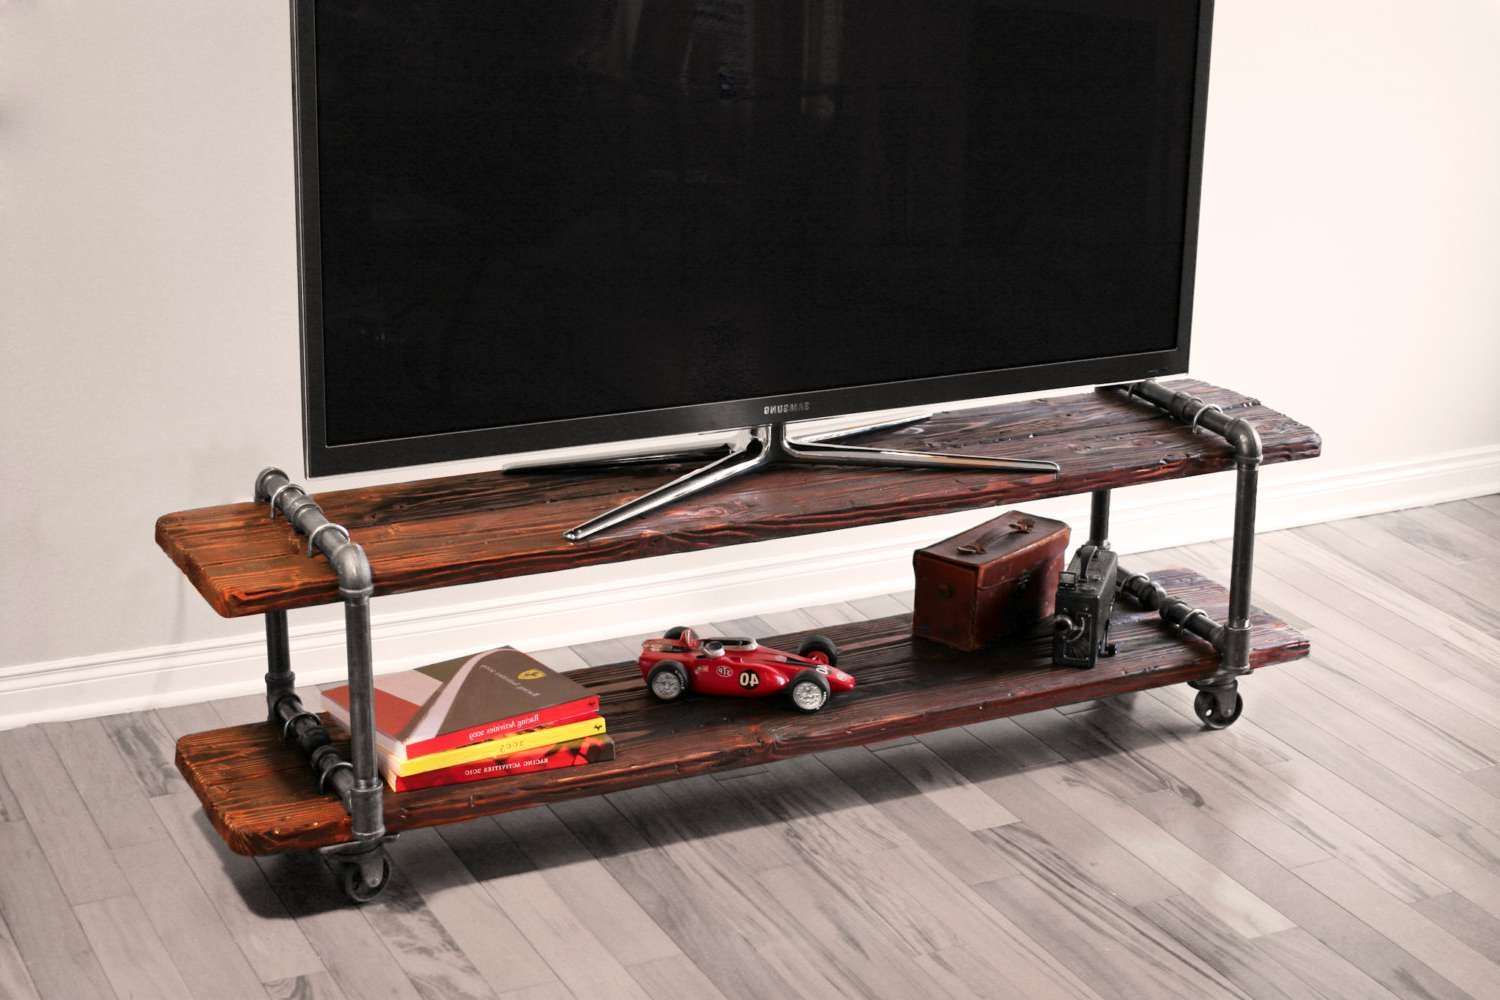 Cool Industrial Style Cast Iron Pipe And Wood Diy Tv Stand With In Industrial Style Tv Stands (View 4 of 15)